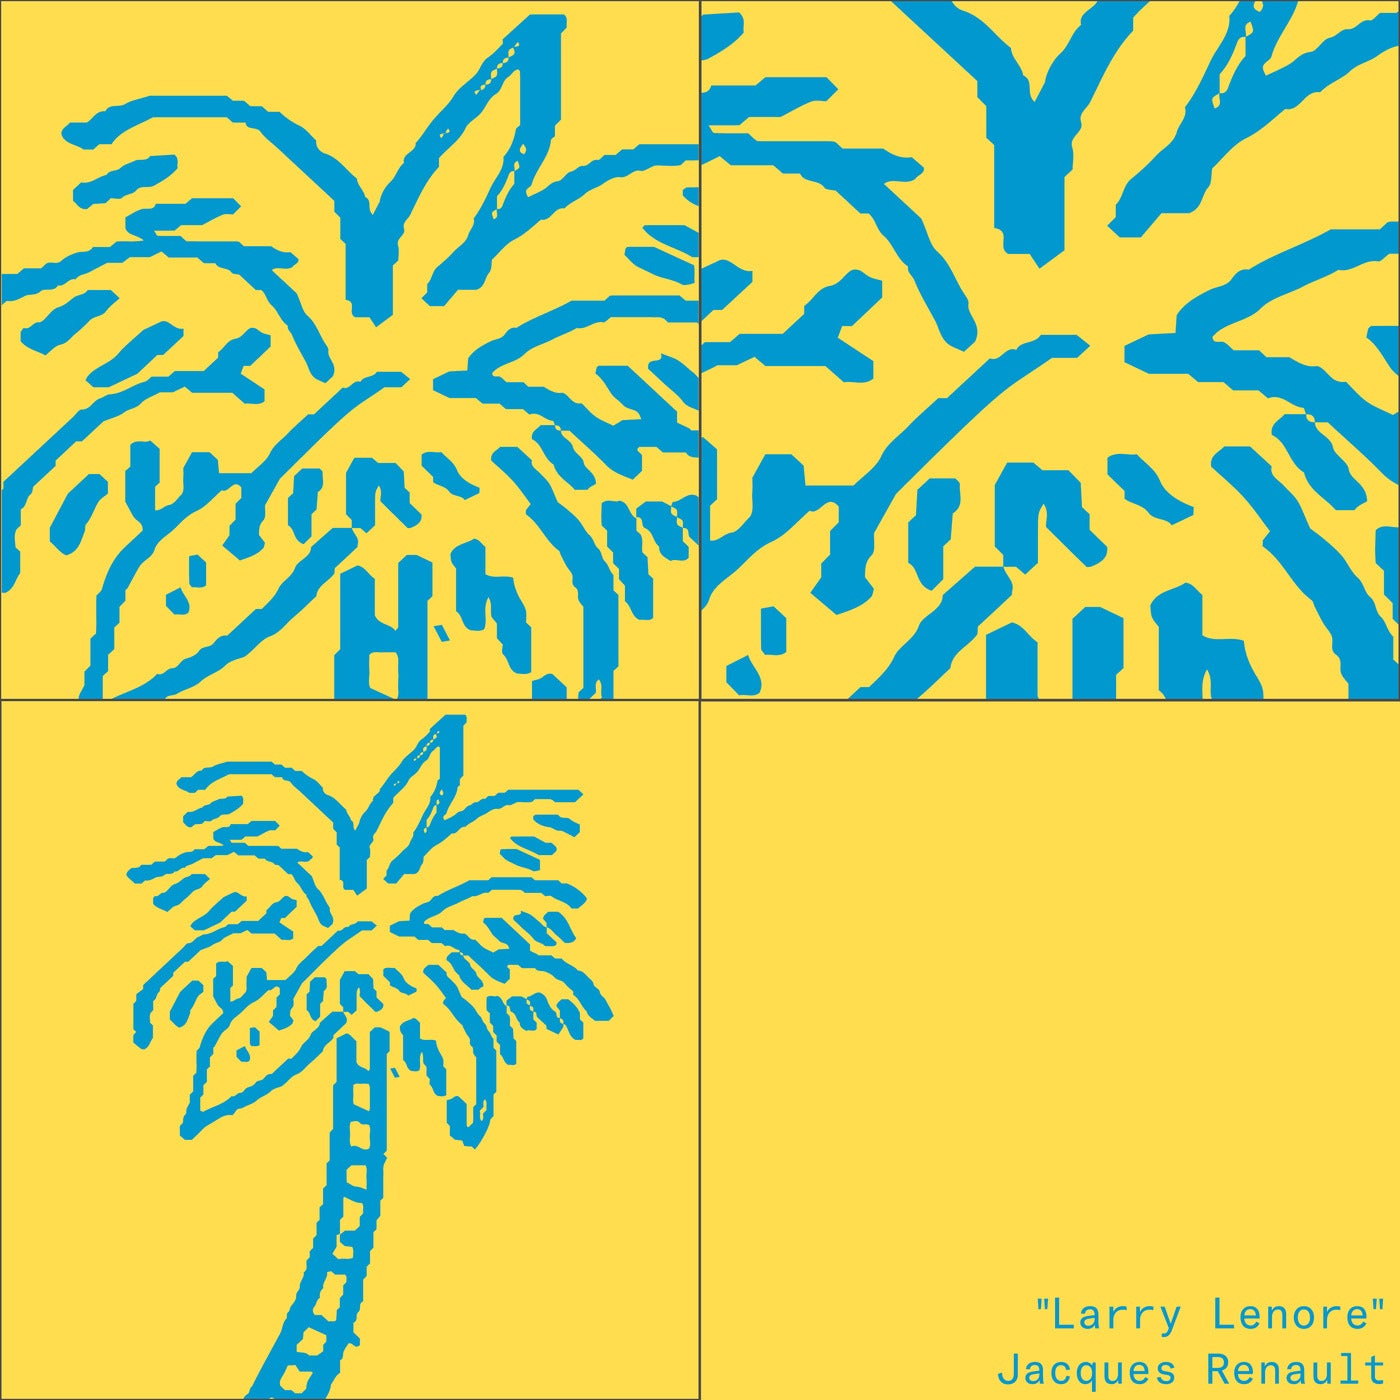 Download Larry Lenore on Electrobuzz